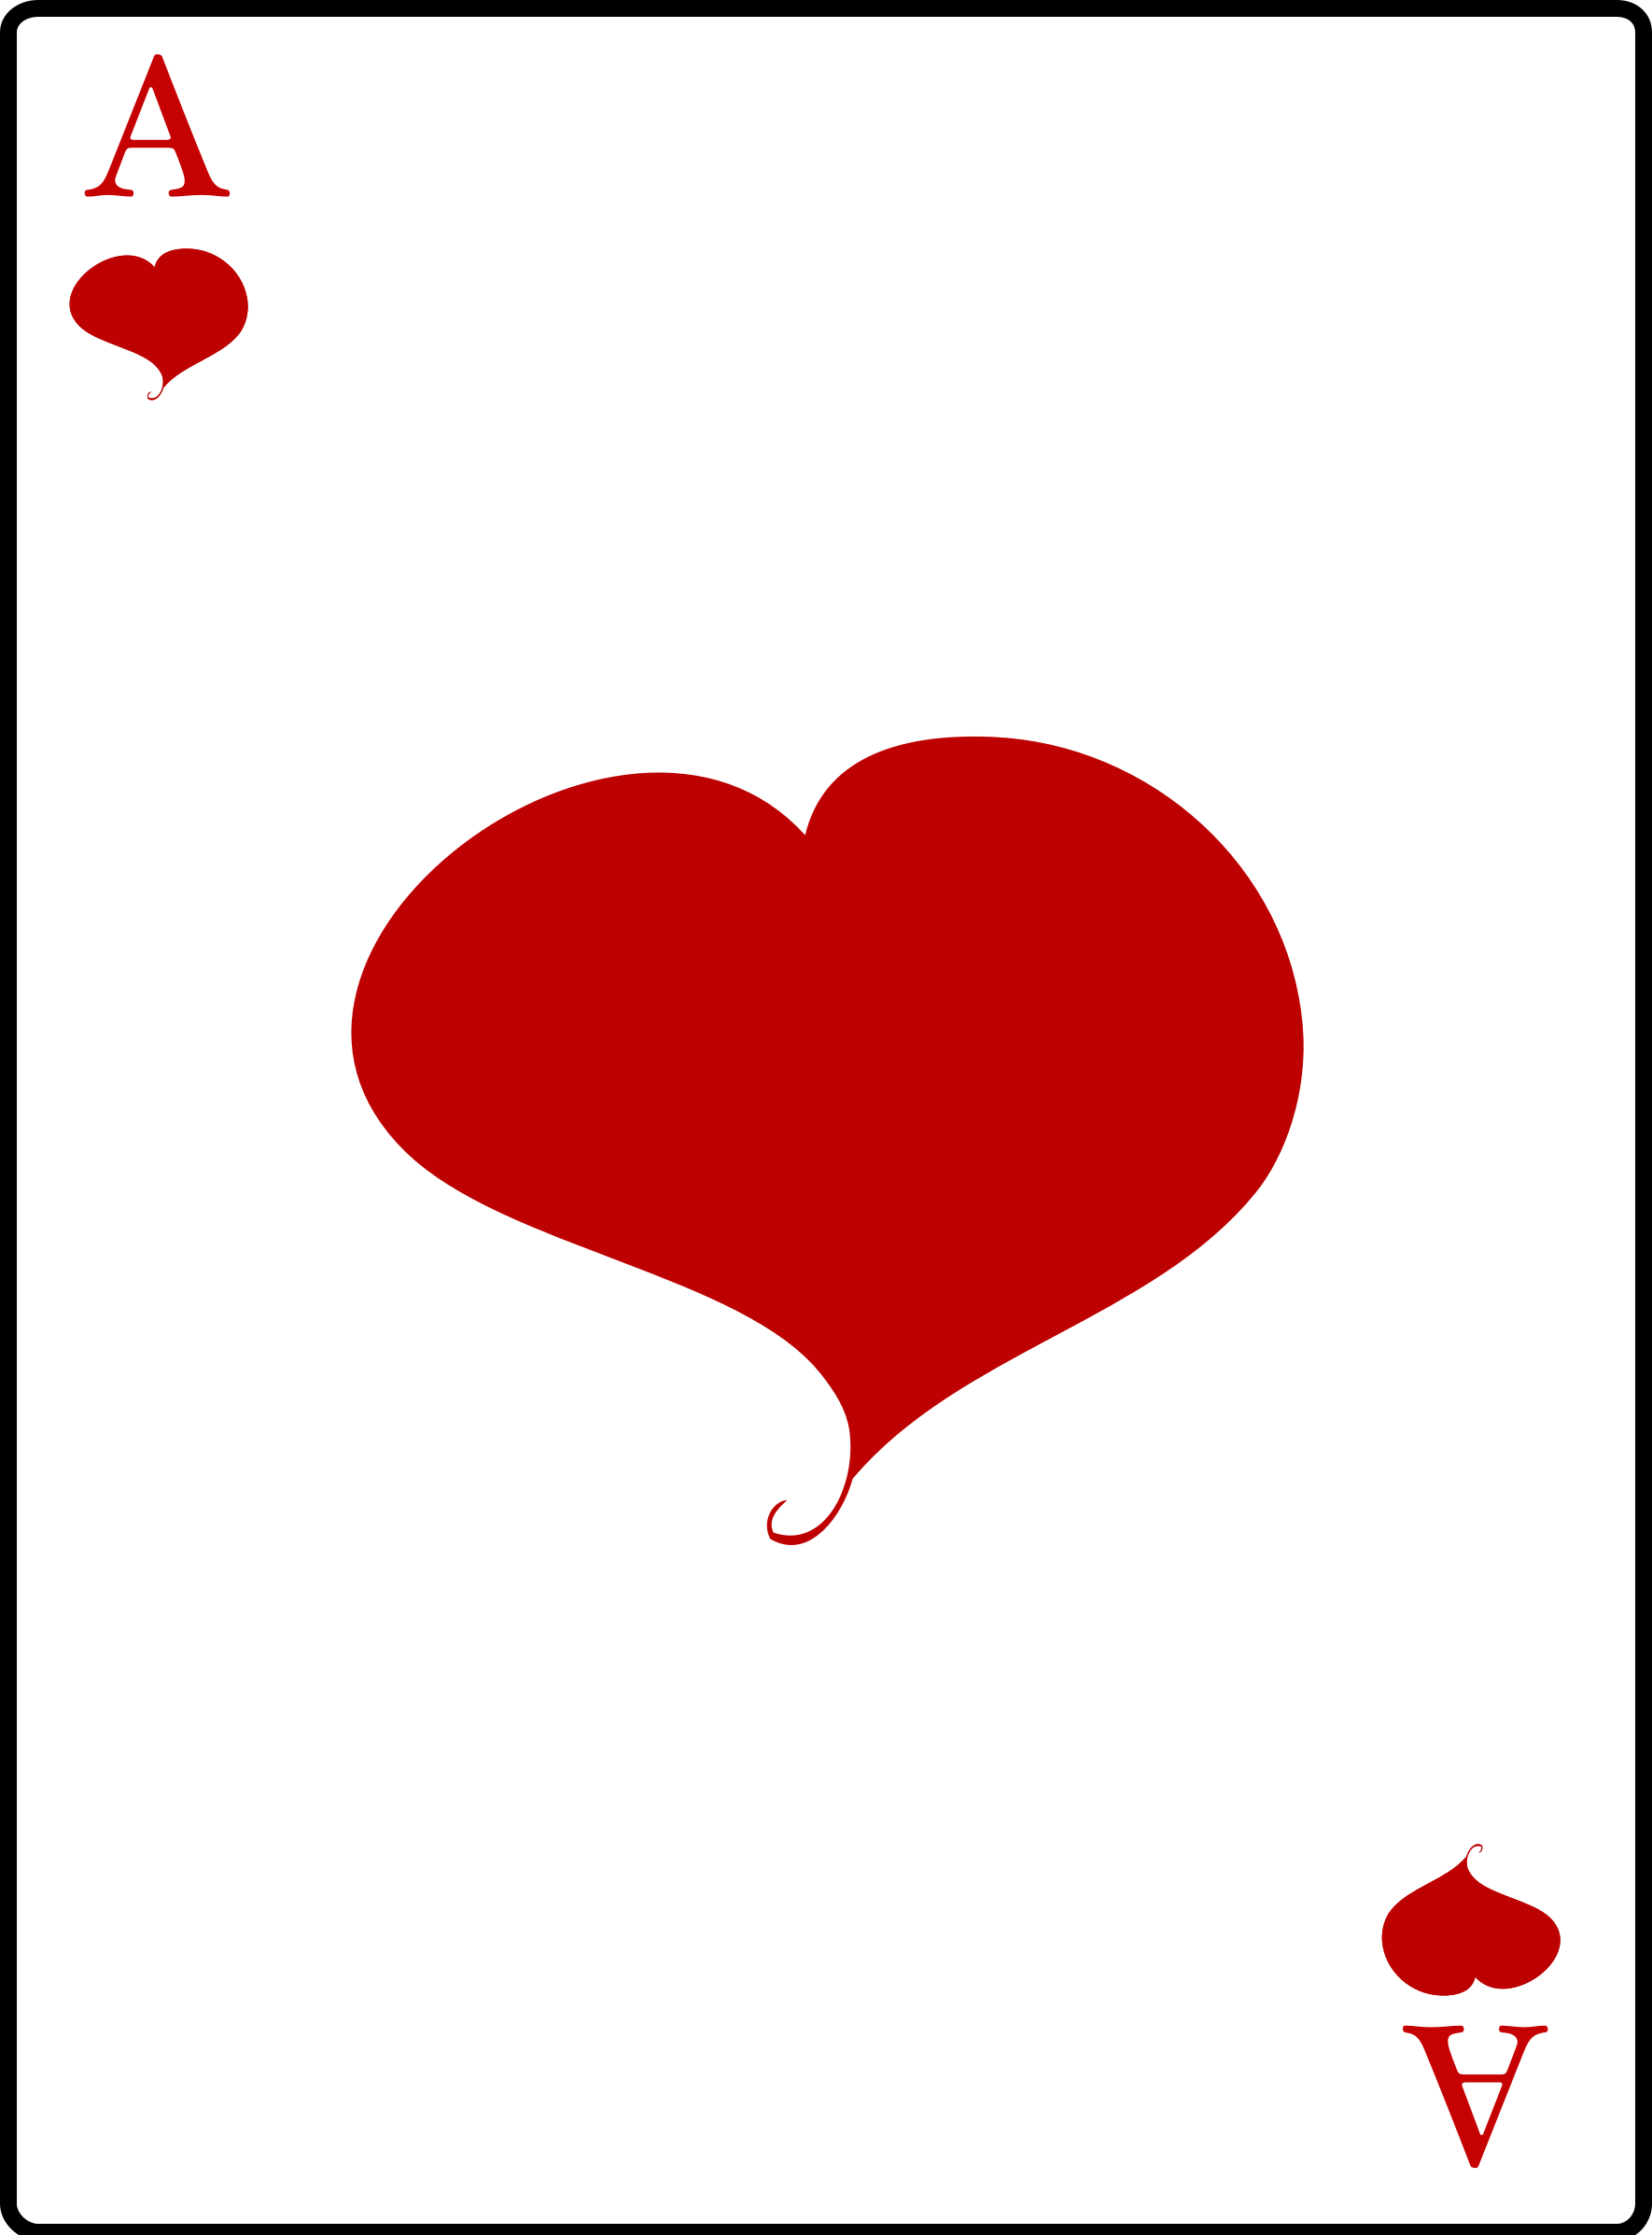 Of hearts big image. Casino clipart ace